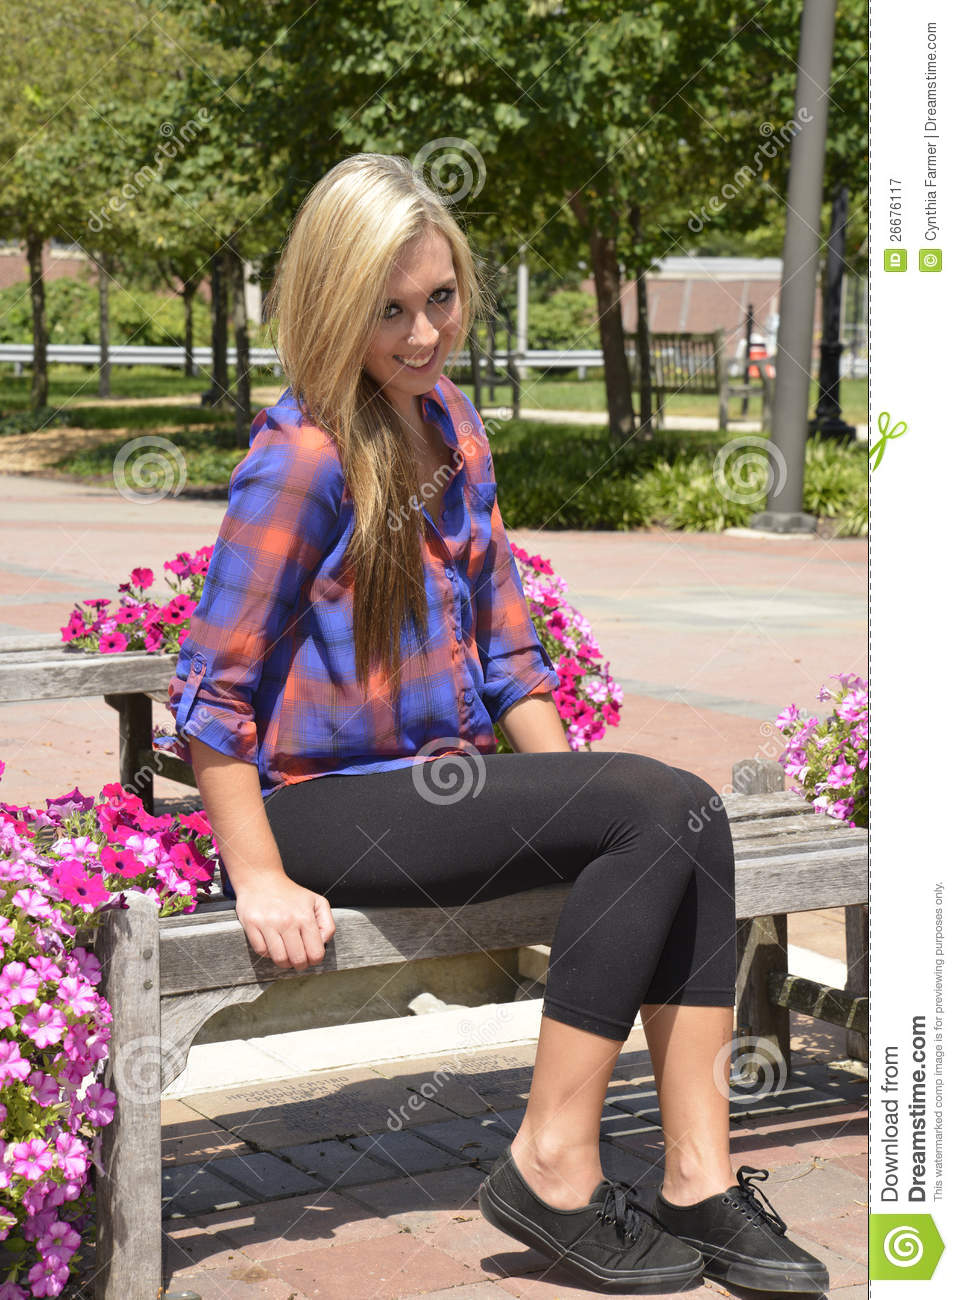 Pretty Teen Girl Sitting On A Wood Bench Stock Image ...